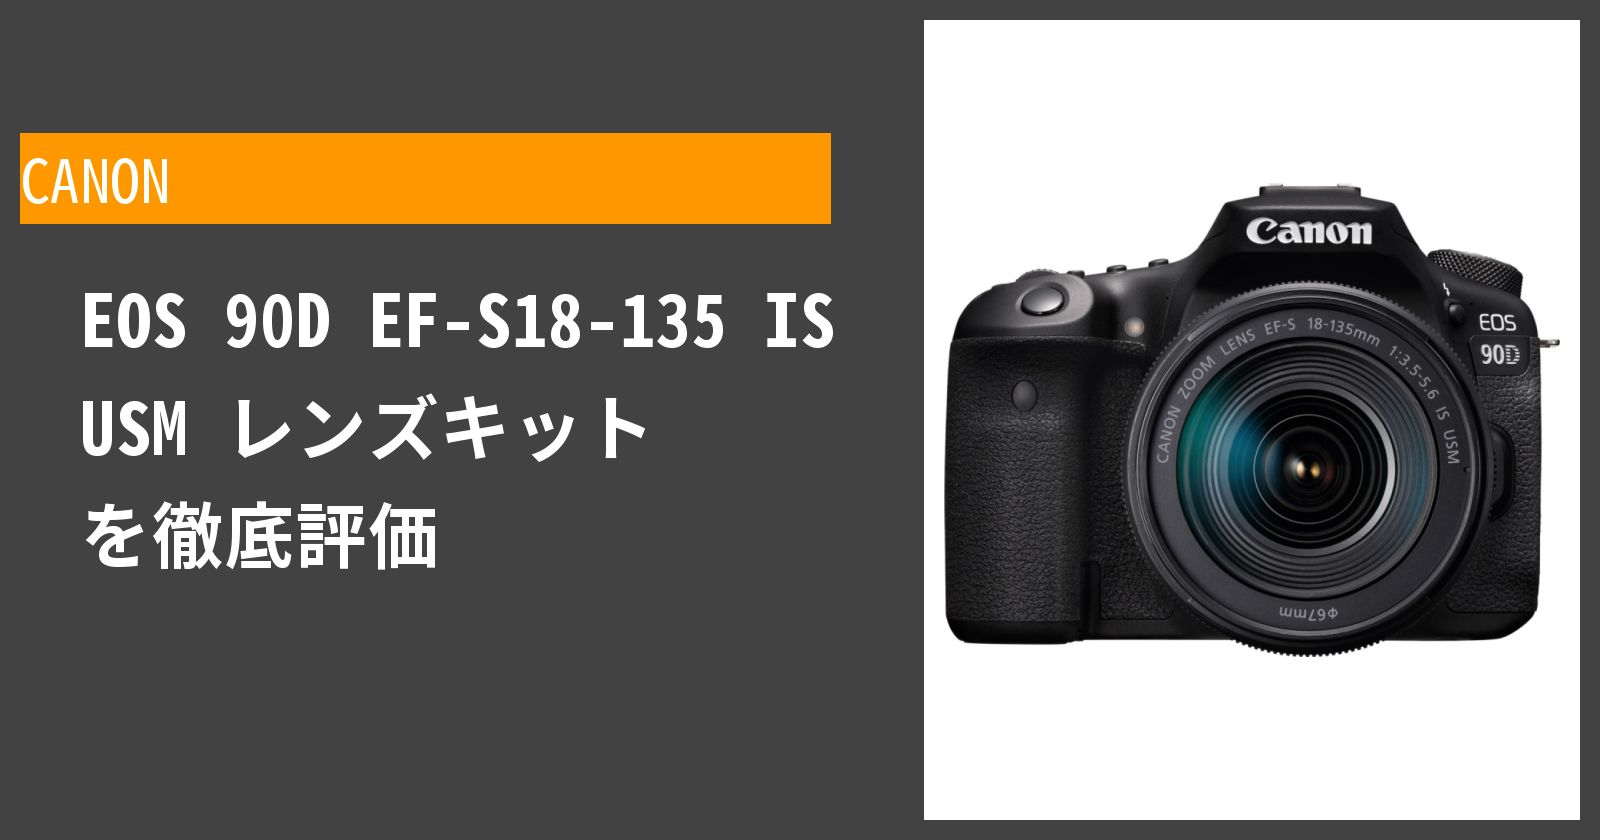 EOS 90D EF-S18-135 IS USM レンズキットを徹底評価